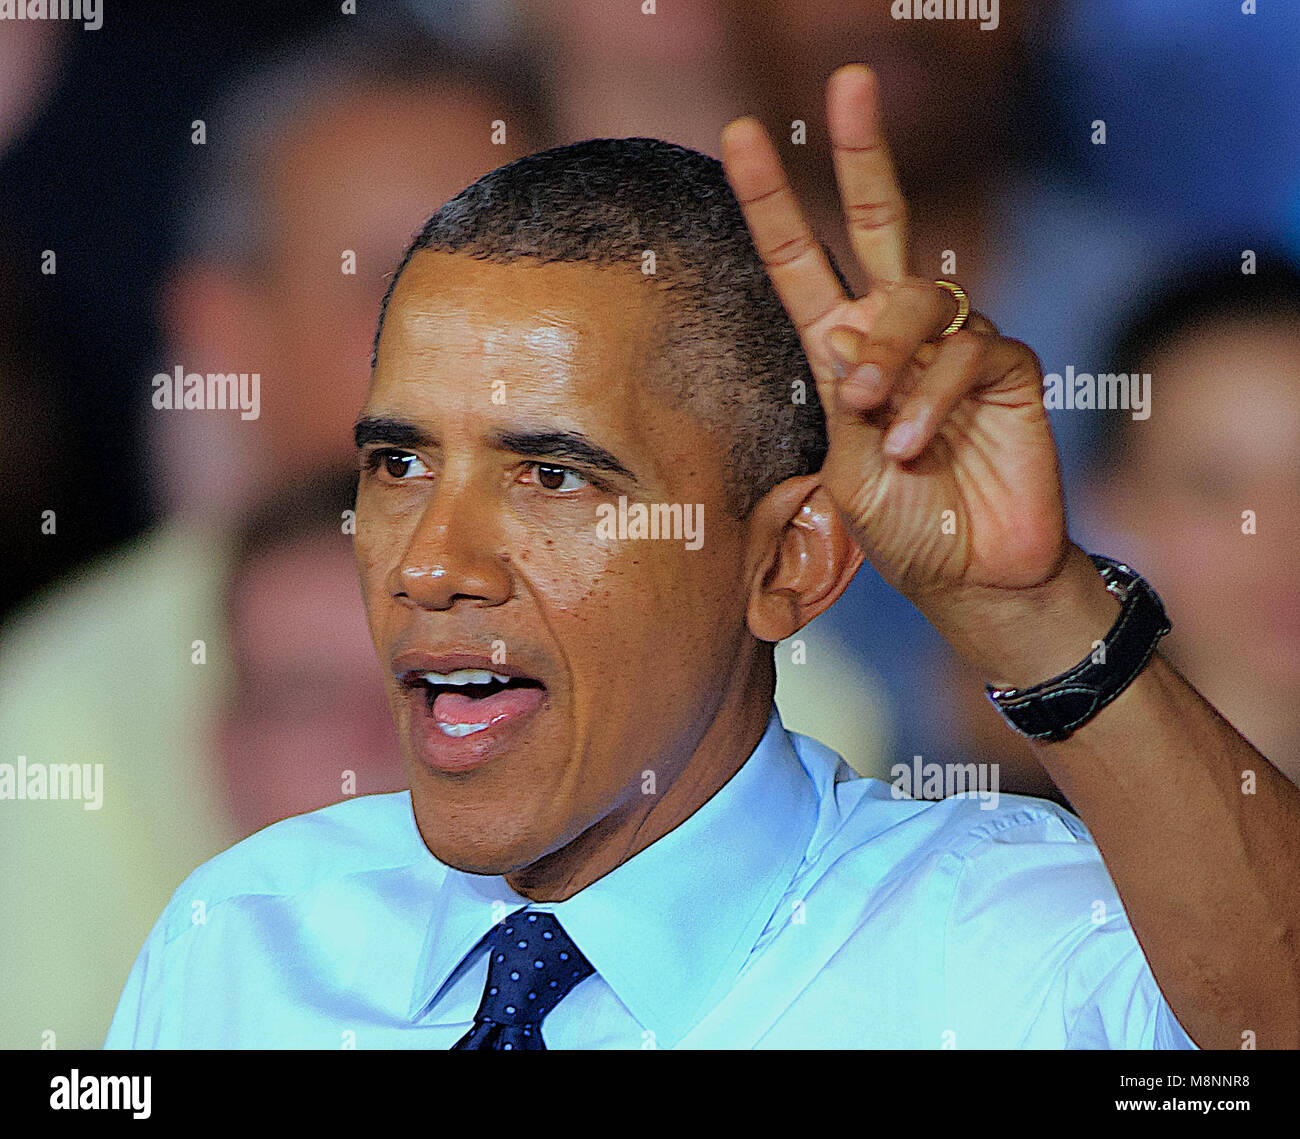 Liberty Missouri, USA, September 20, 2013. President Barak Obama at the Ford Stamping Plant. President Obama while - Stock Image